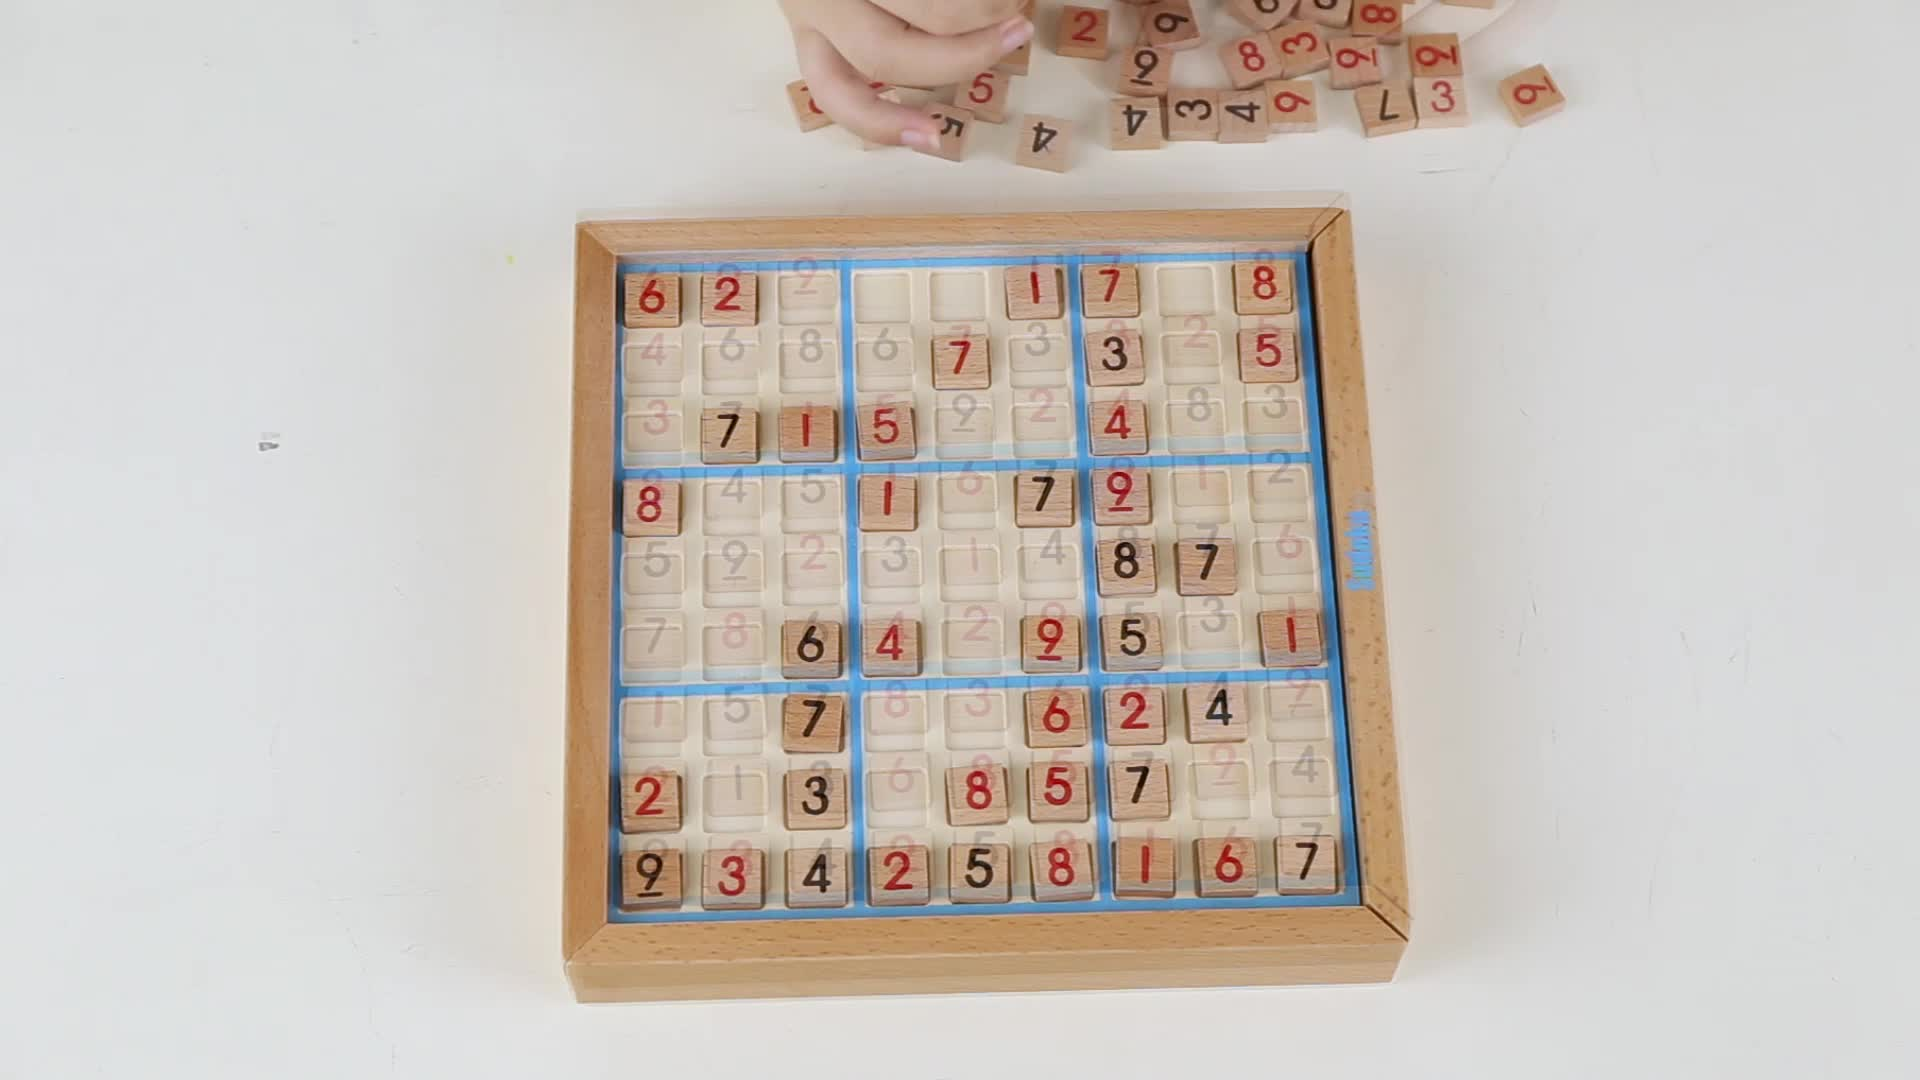 Number educational learning puzzle kids logic game toy children wooden sudoku